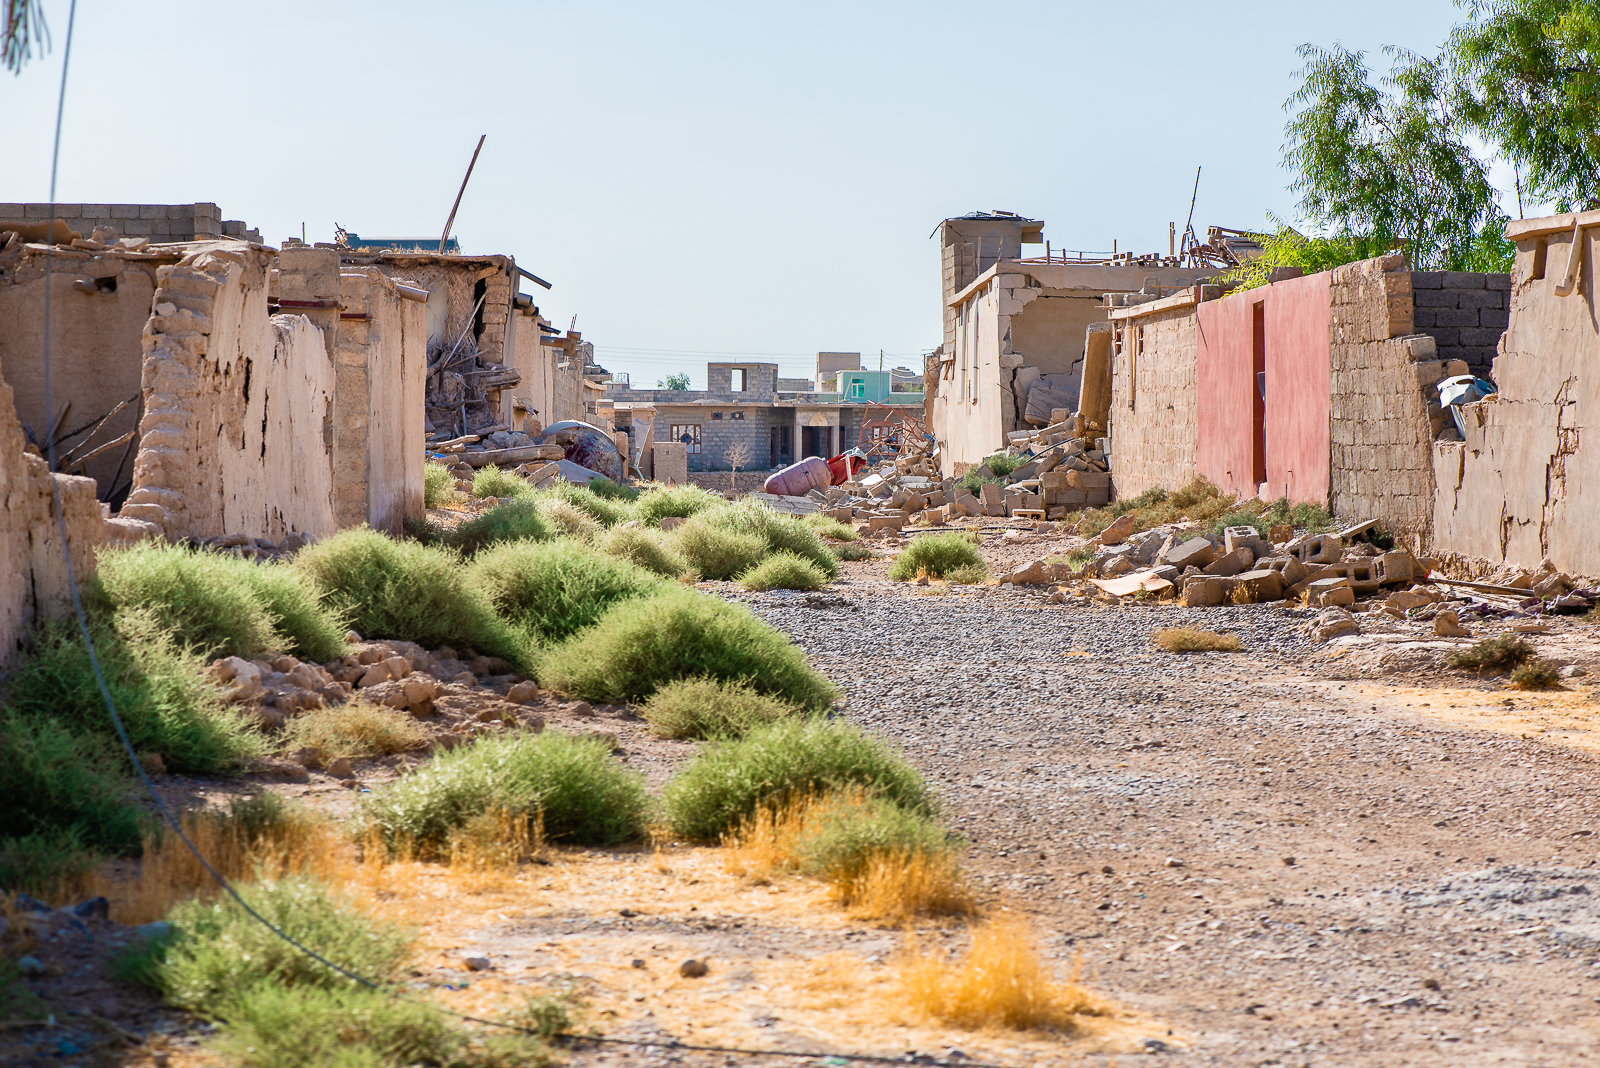 A destroyed and abandoned village under the Sinjar mount were the Yazidi people lived